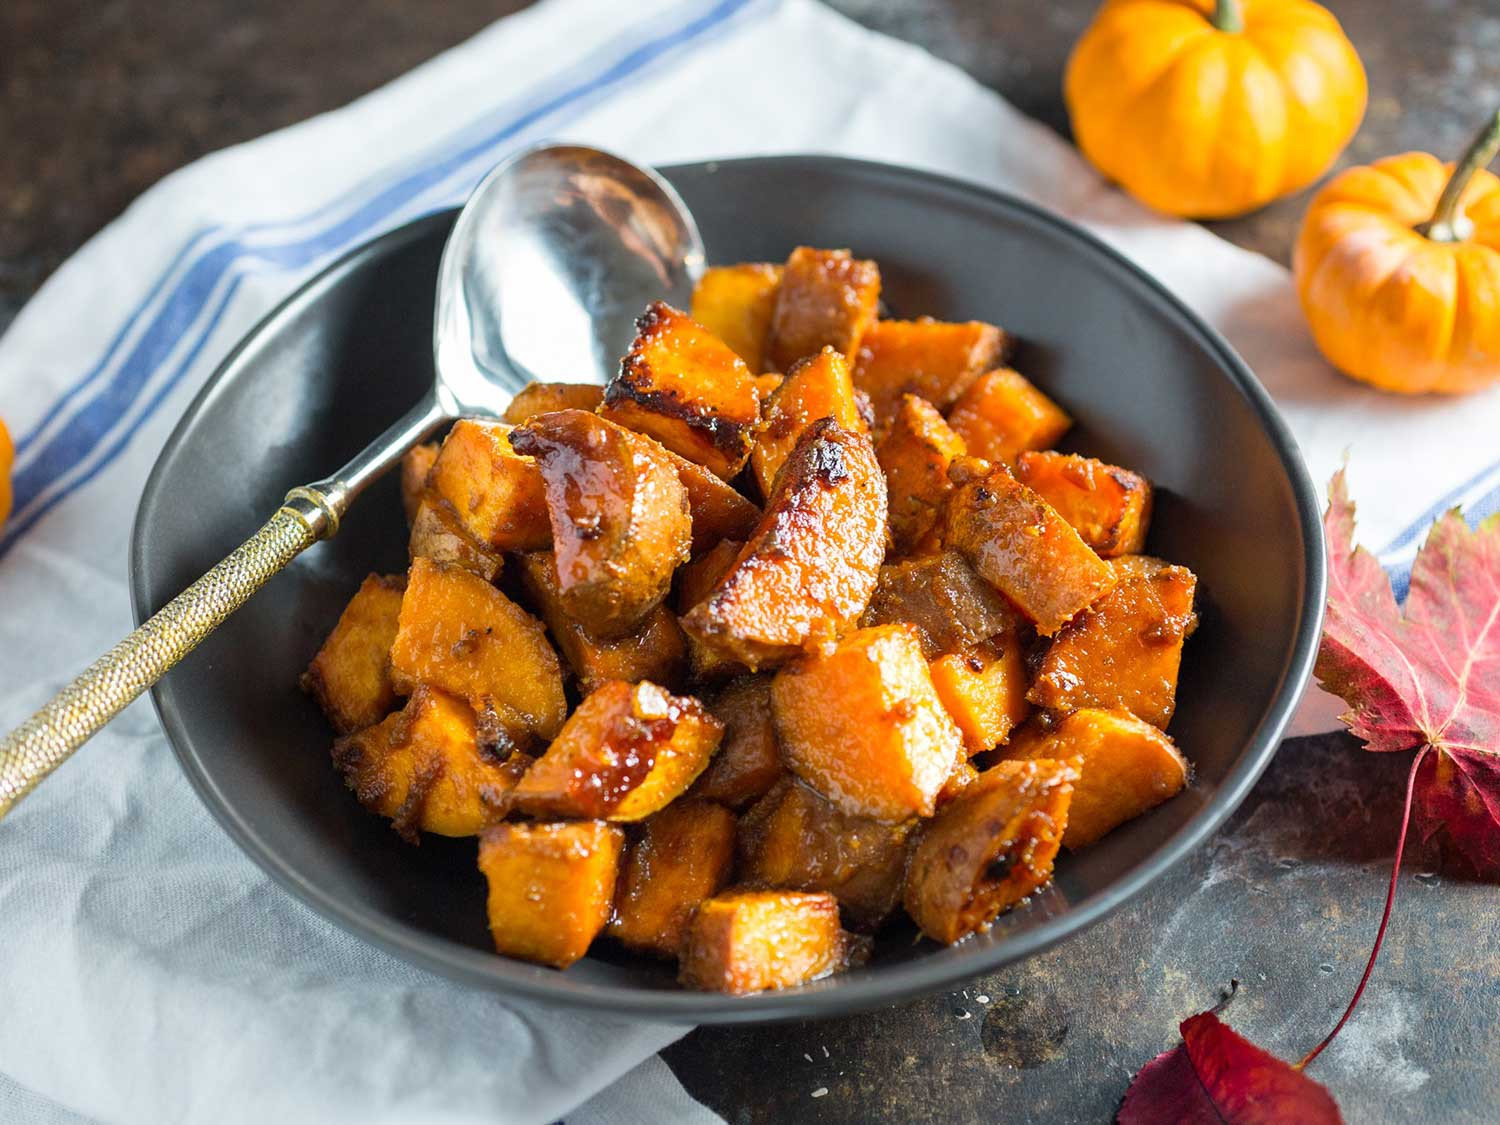 Thanksgiving Sweet Potato Recipes  14 Sweet Potato Recipes for Thanksgiving That Are Just